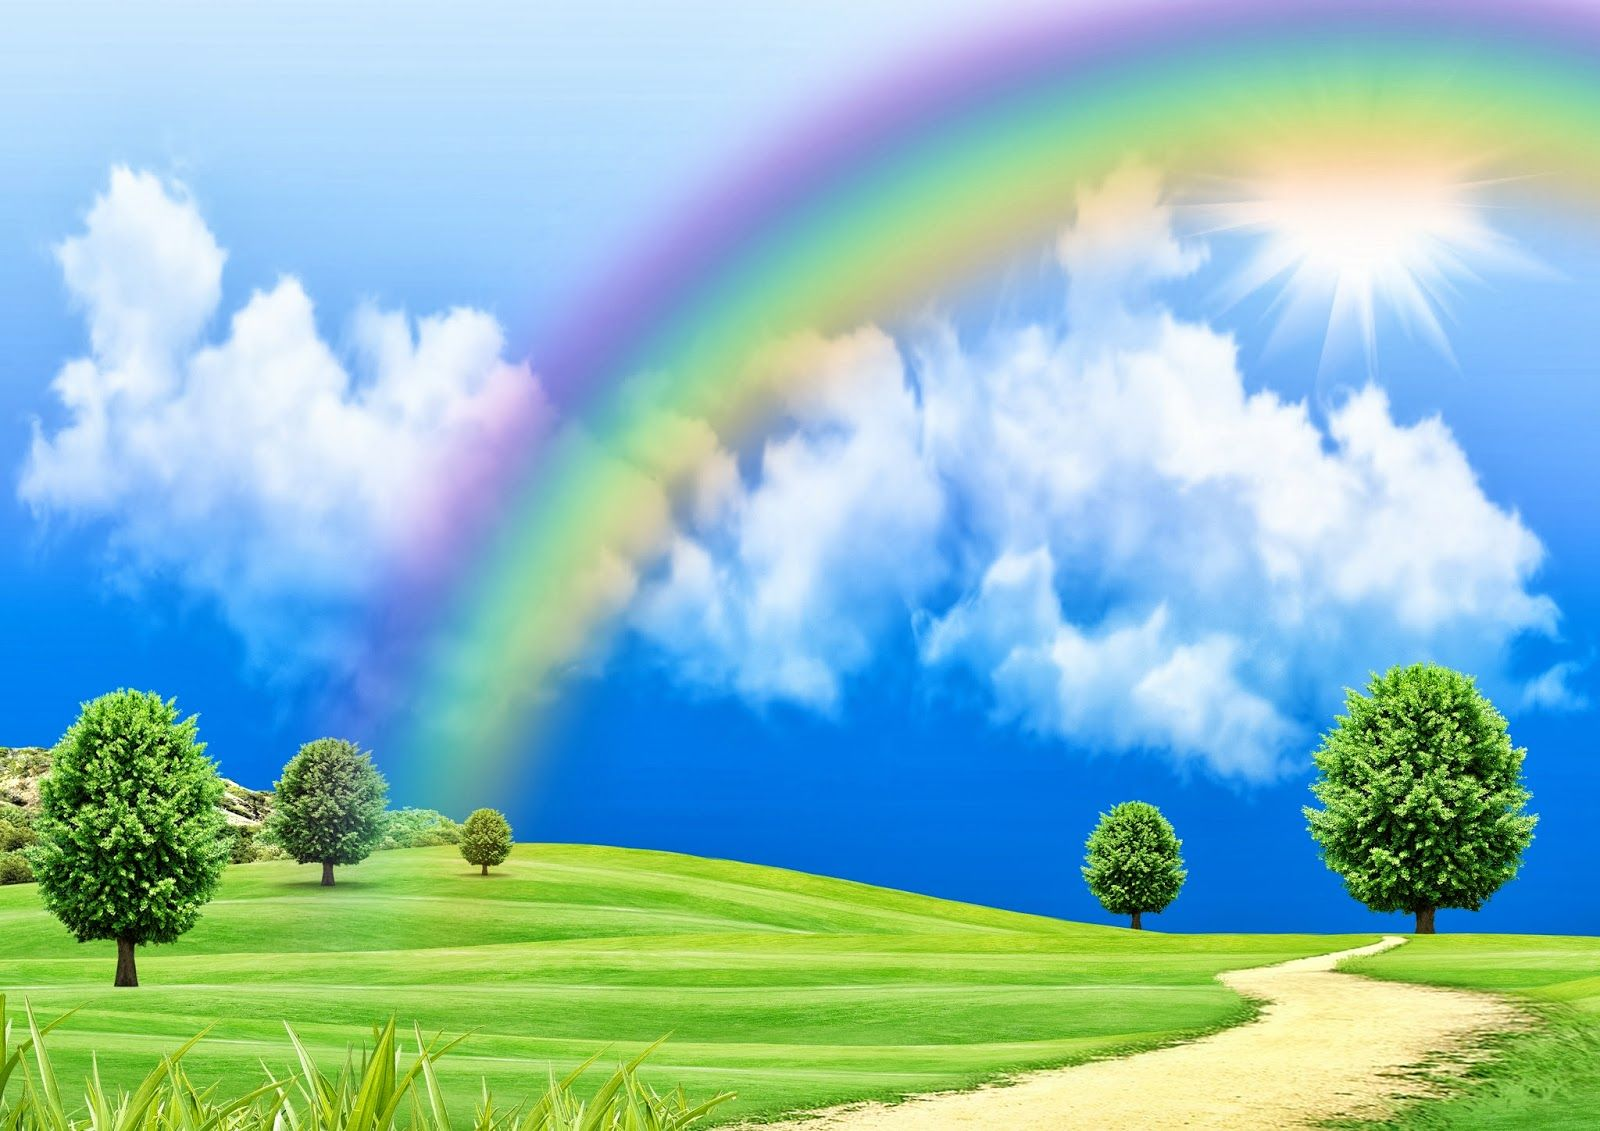 All New Hd Images Free Download Desktop Images Background: Rainbow Wallpapers Free Download HD Latest Amazing